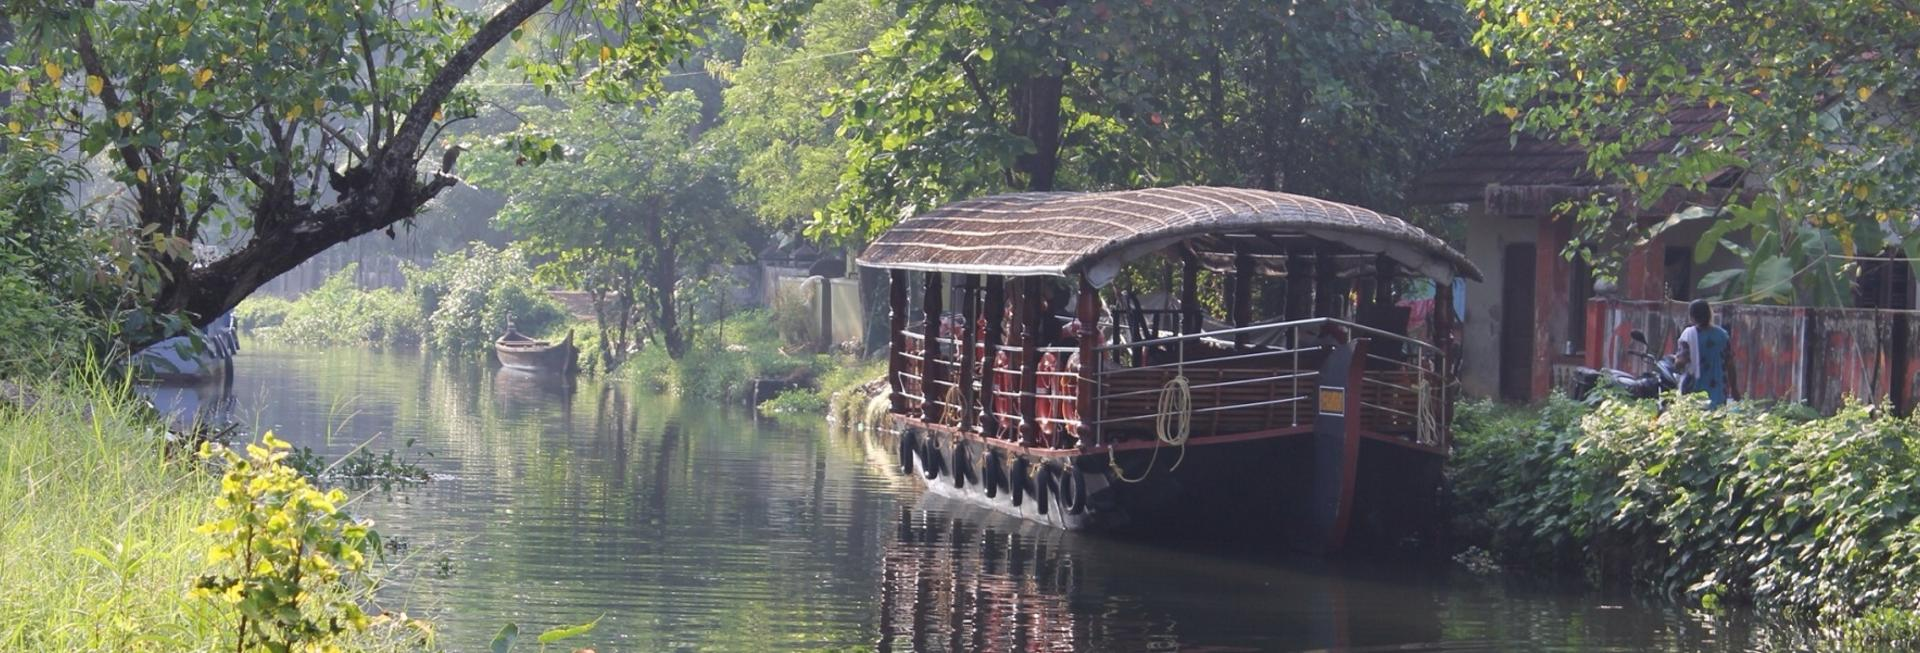 Backwaters cruise, Kerala